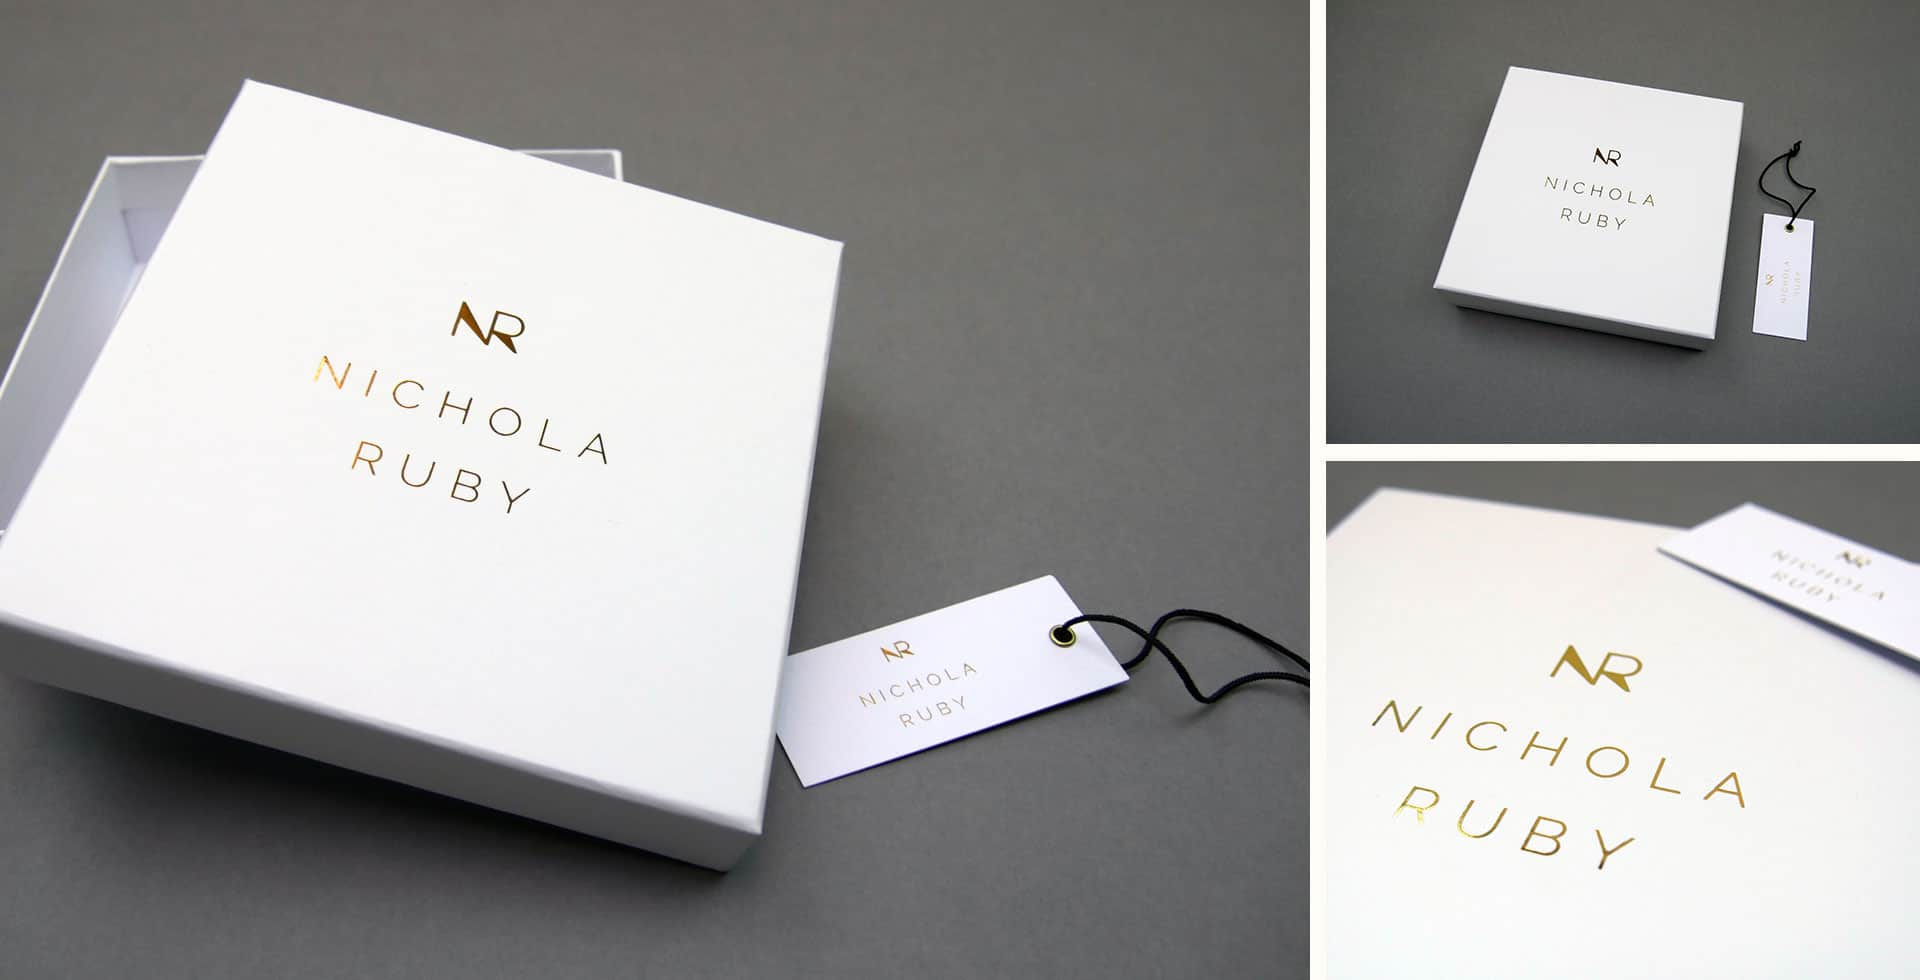 Nichola Ruby packaging and product tags